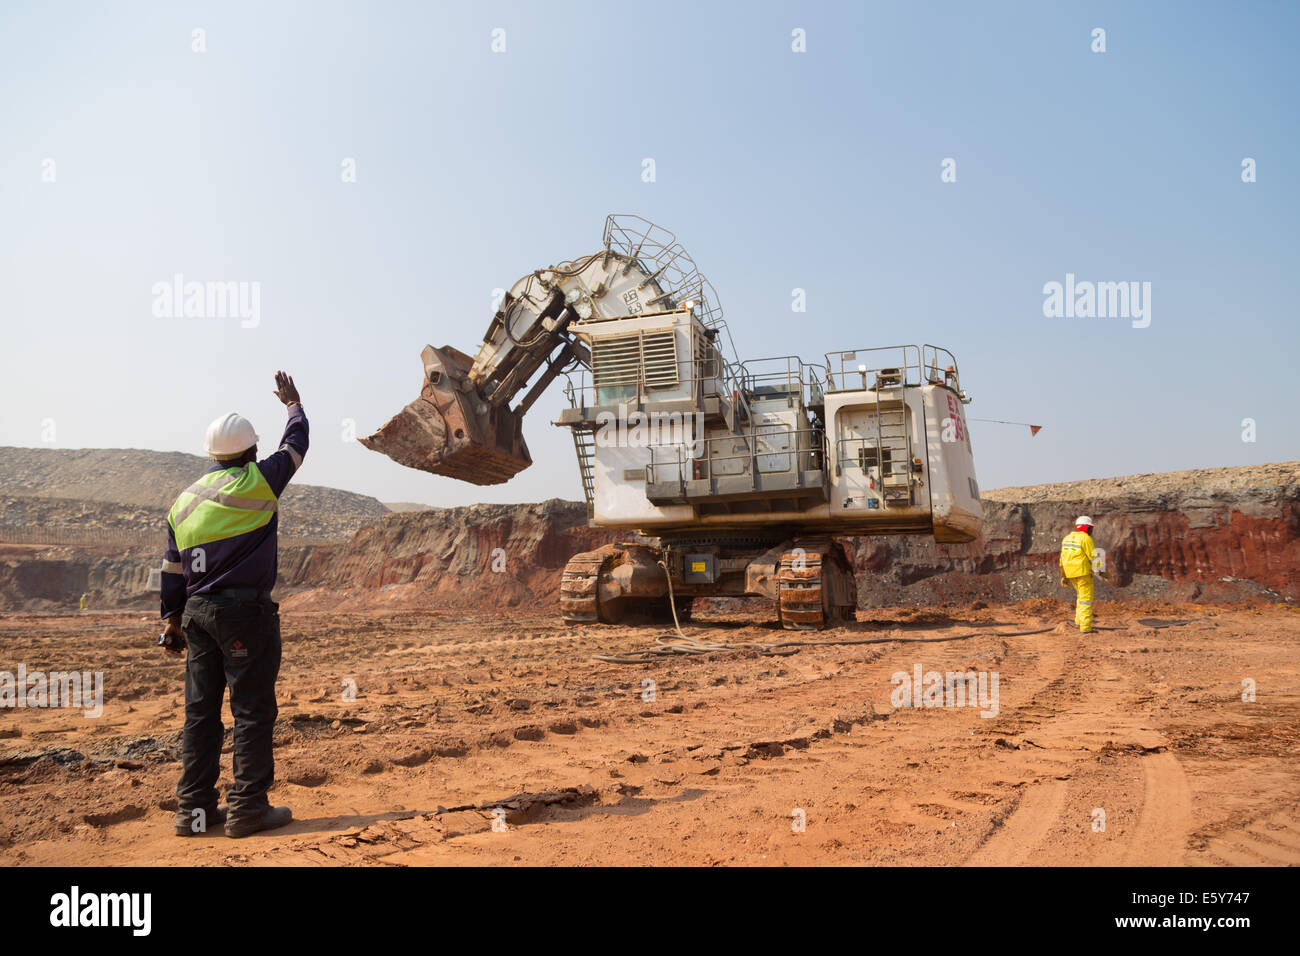 a supervisor guides and instructs an excavator operator during